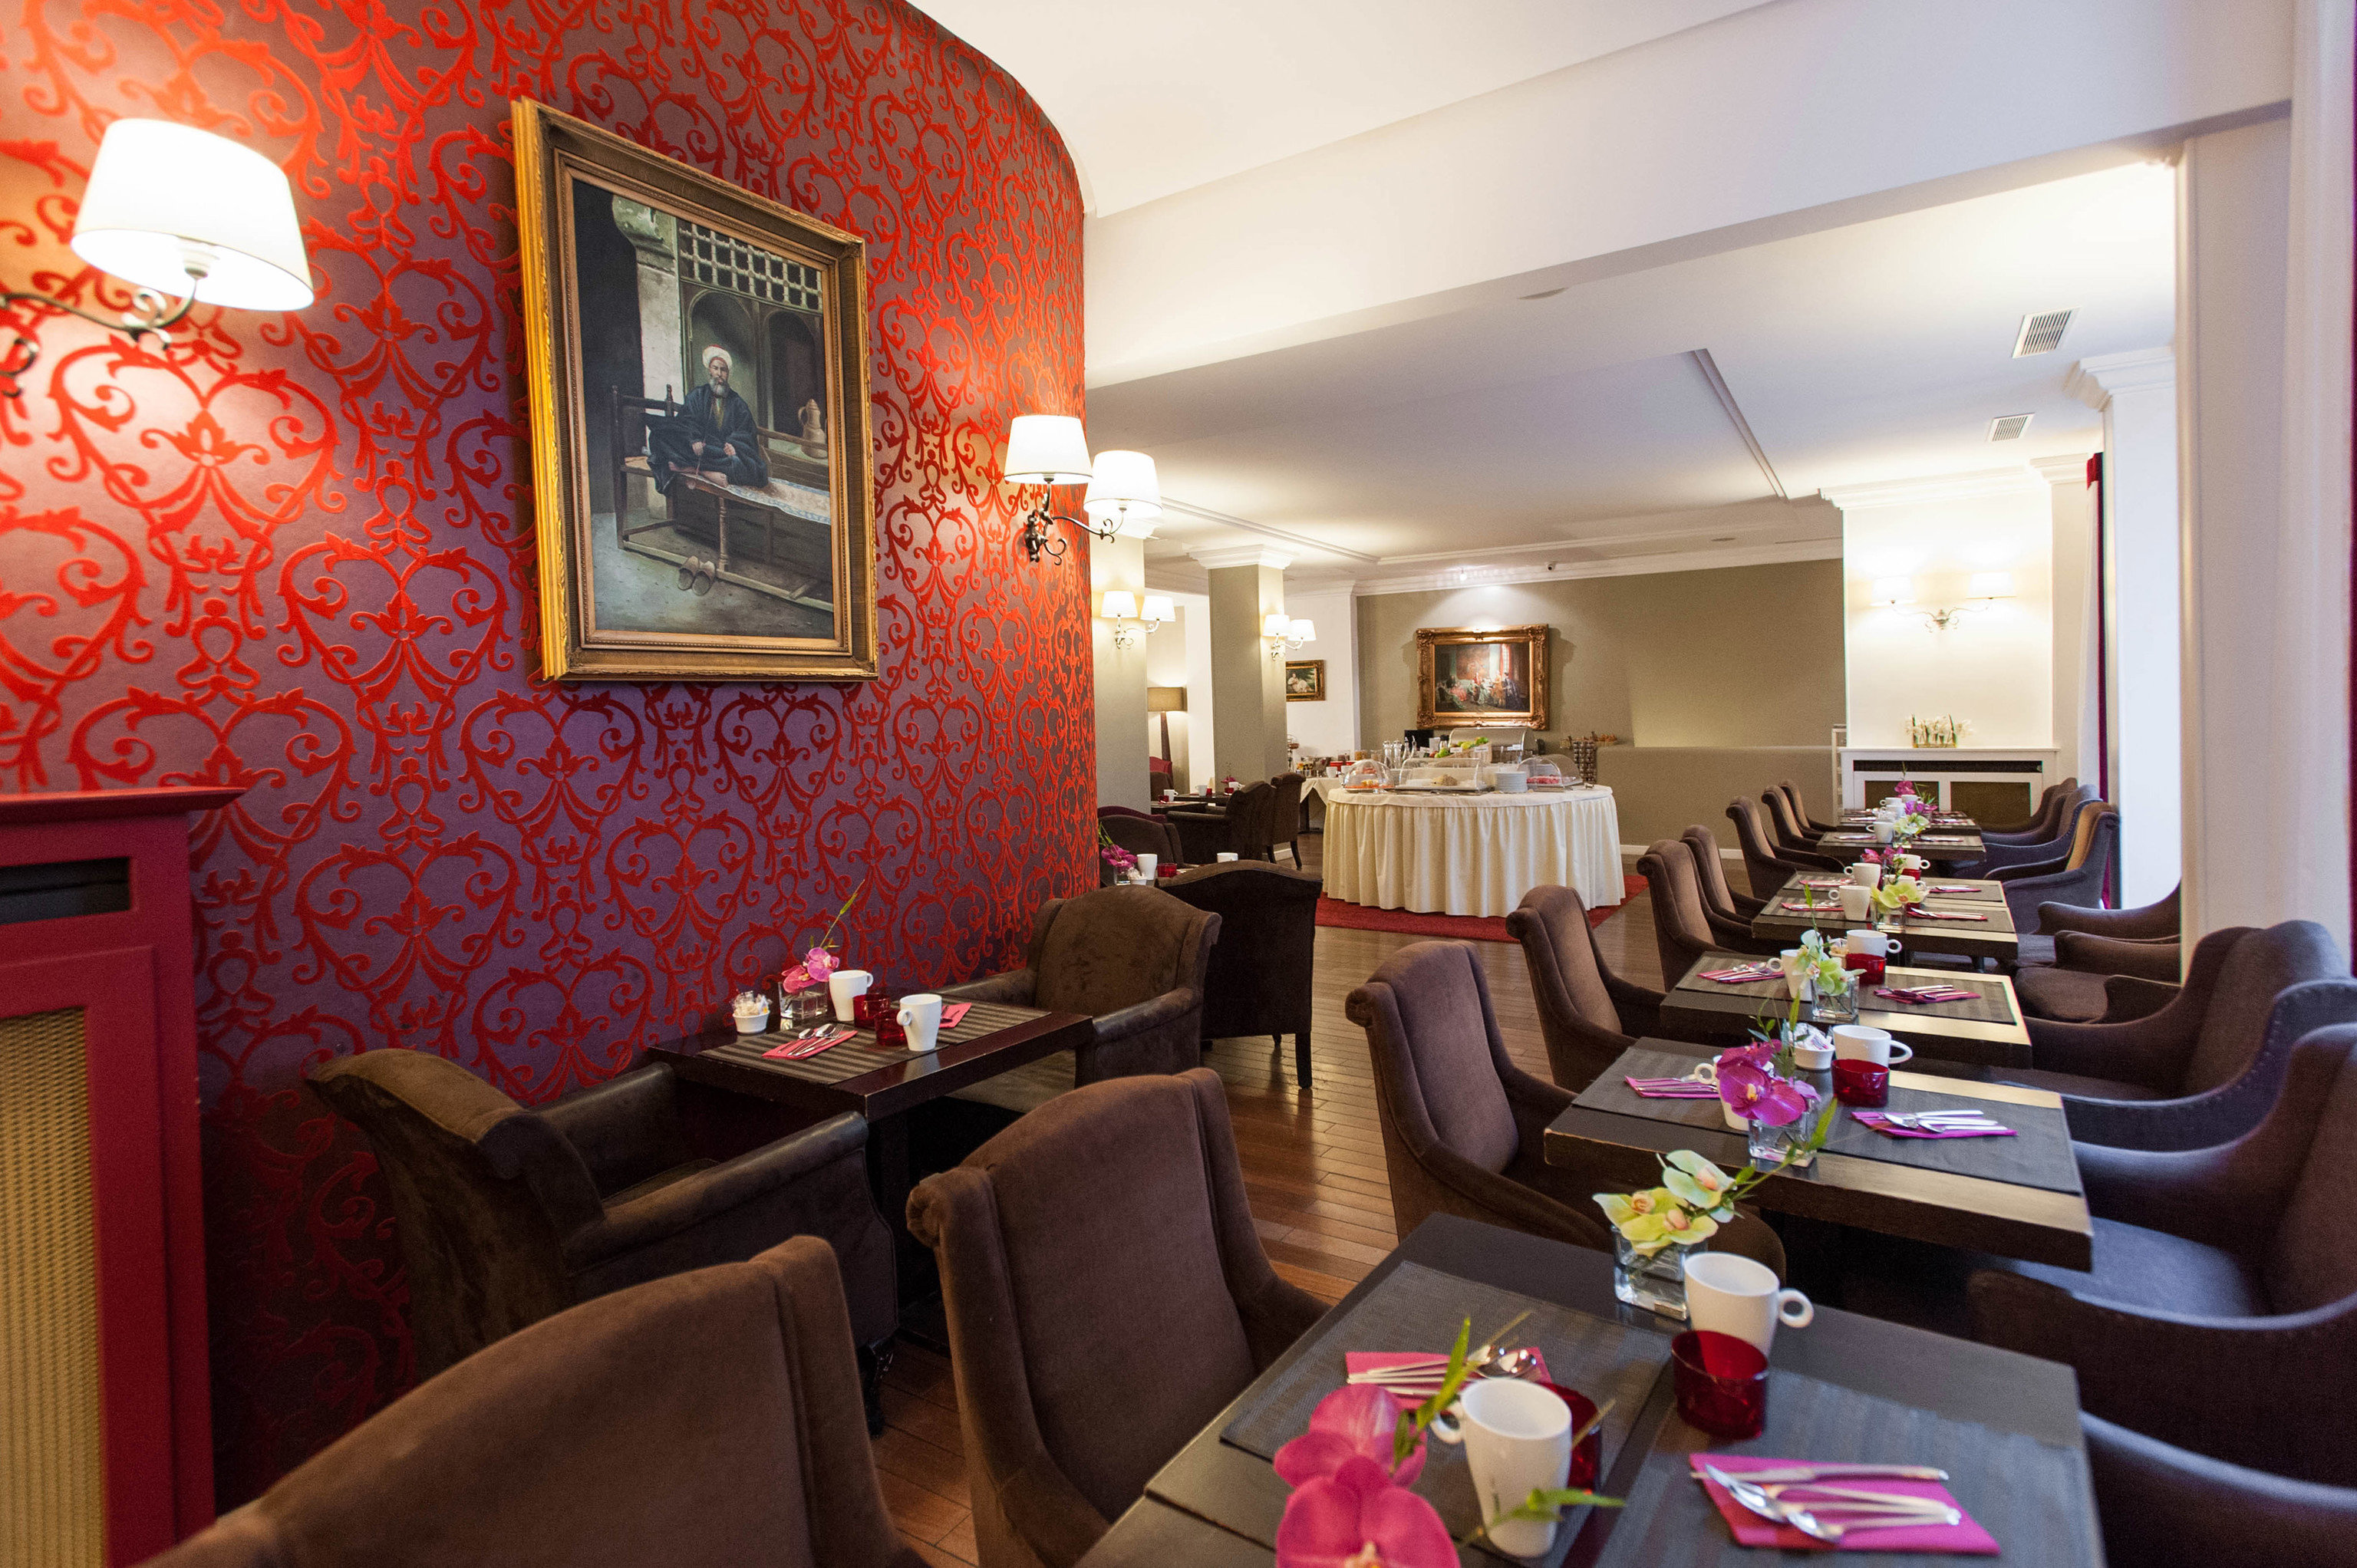 restaurant living room Lobby function hall colorful colored